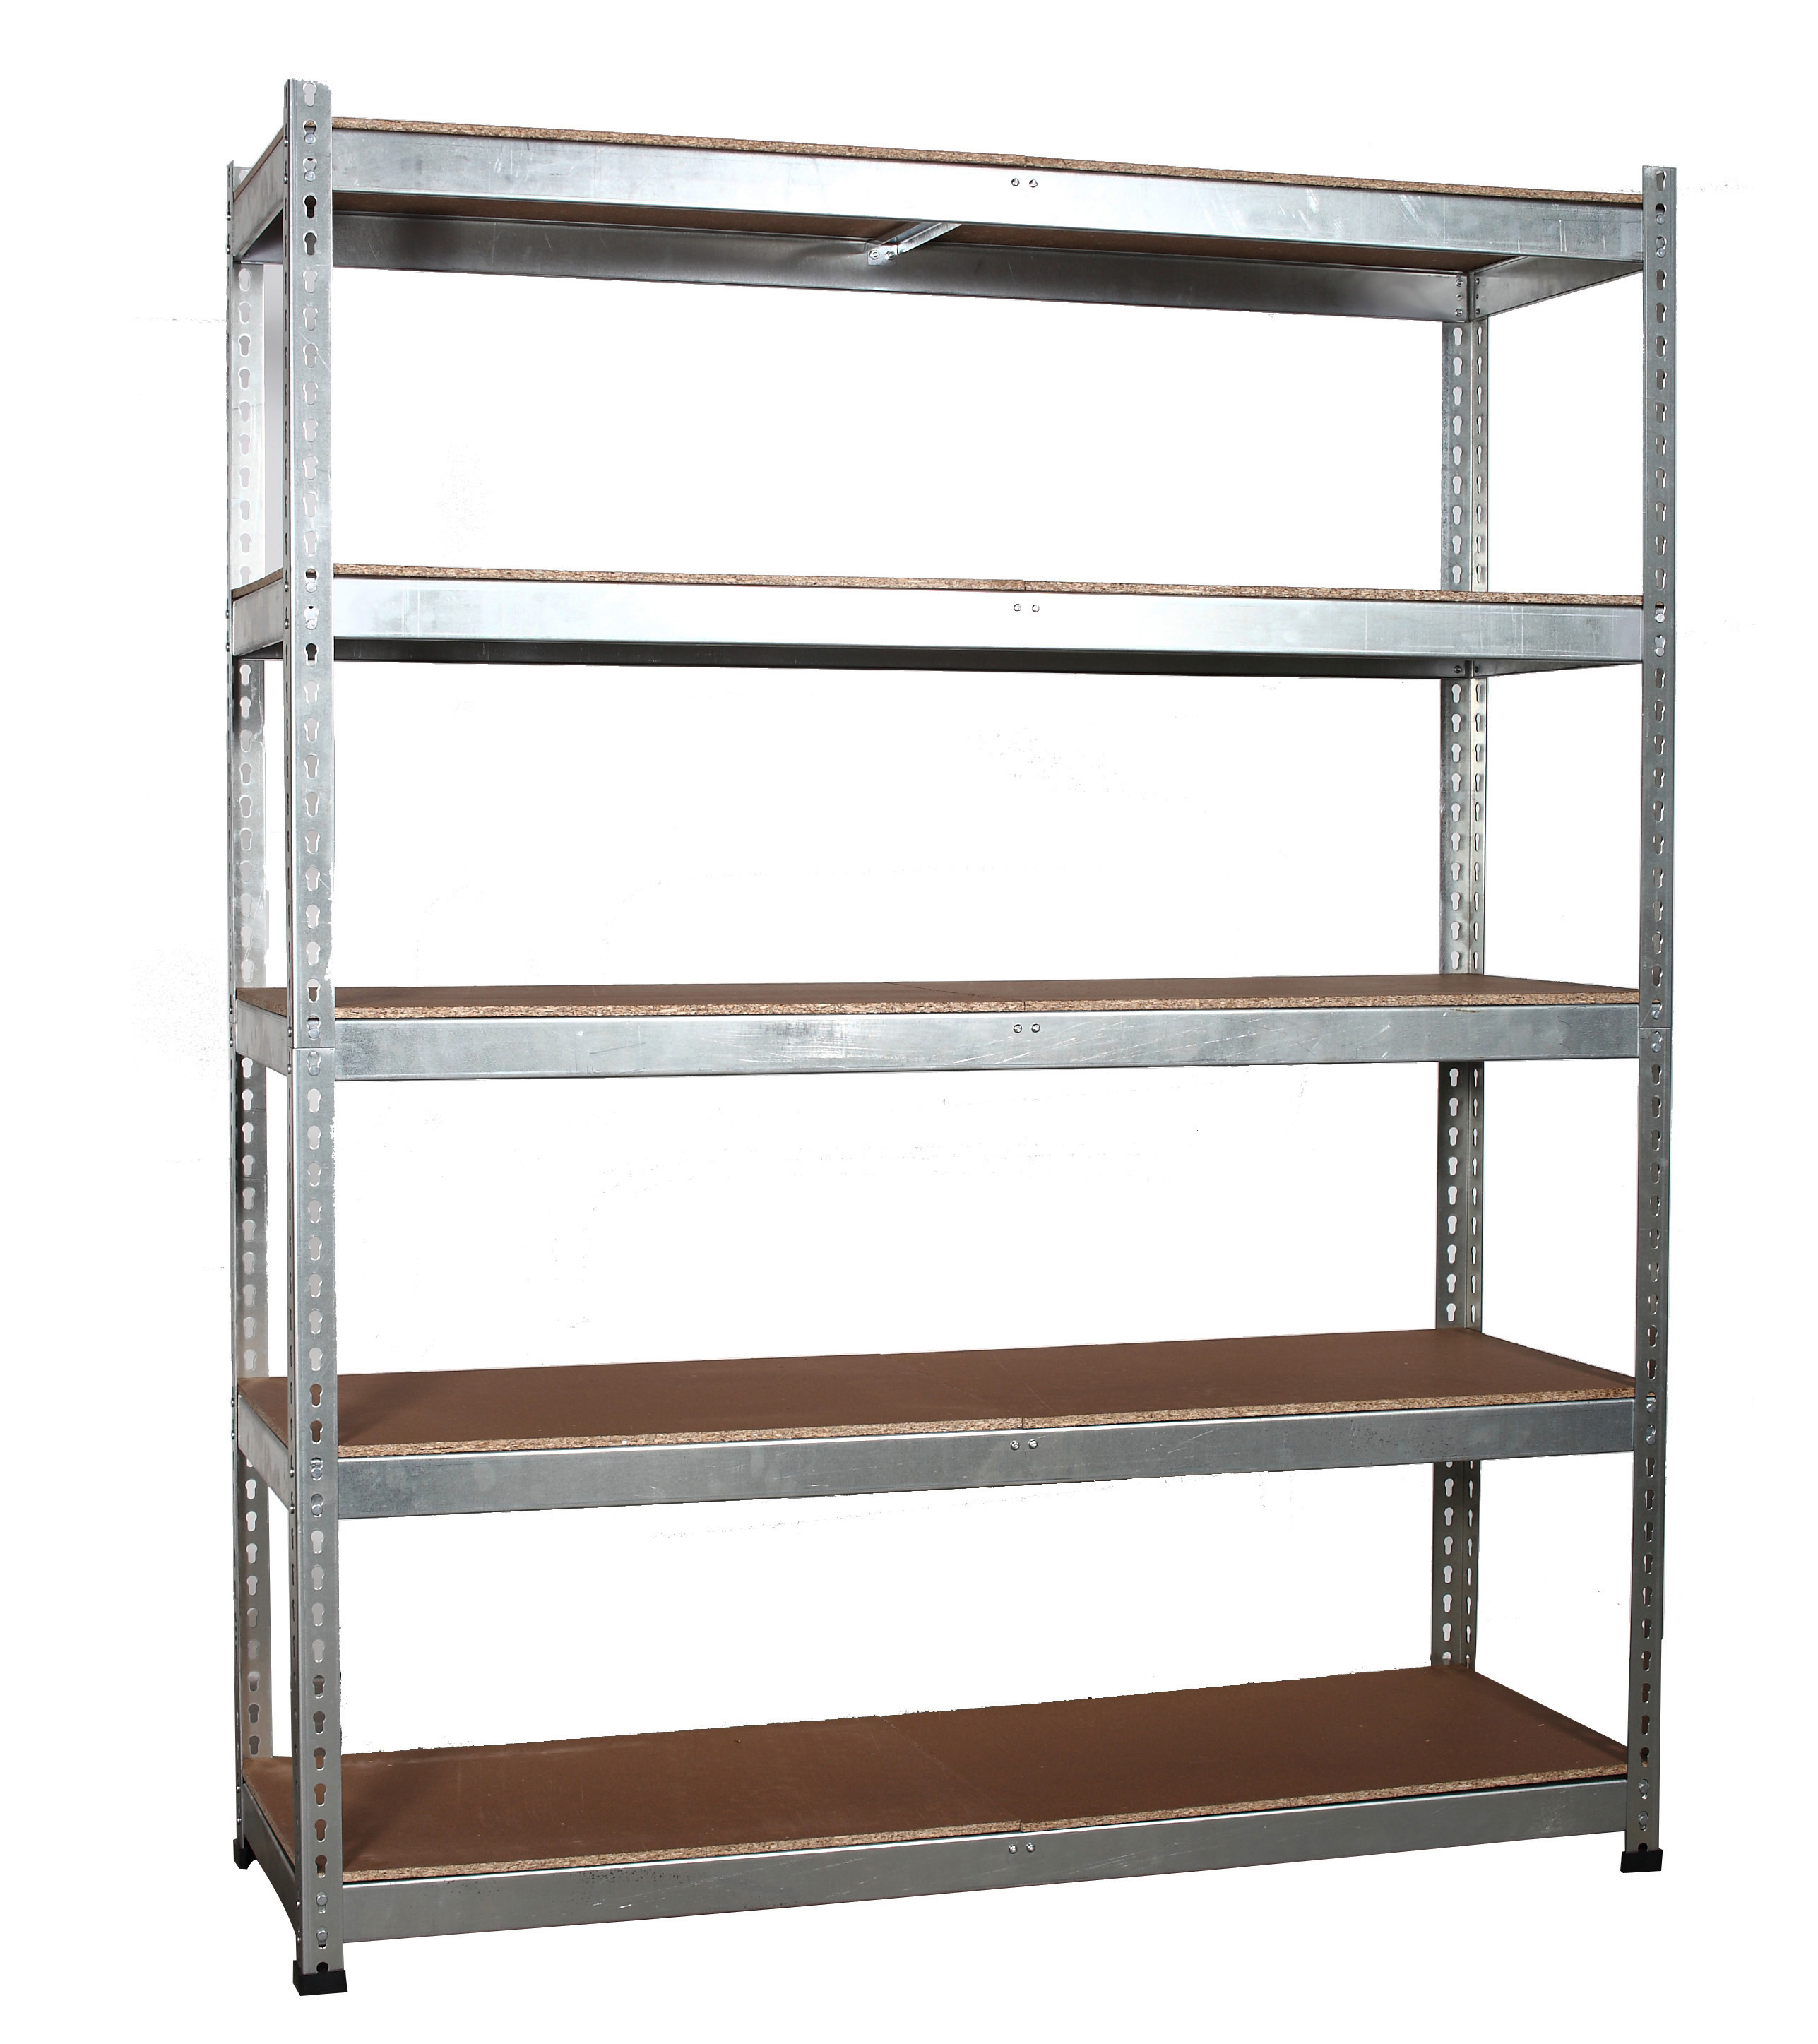 Aluminum Bookcase Workshop Garage Warehouse Shed Storage Shelf Racking Unit